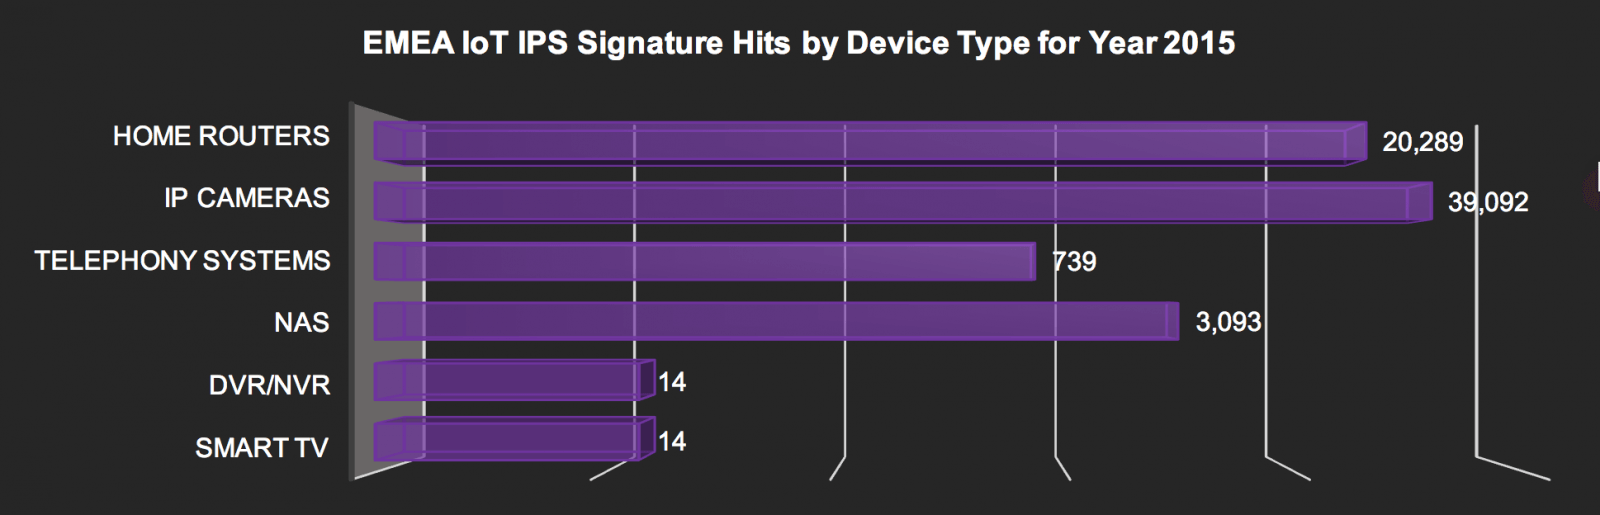 IoT IPS signature hits in EMEA by device – 2015